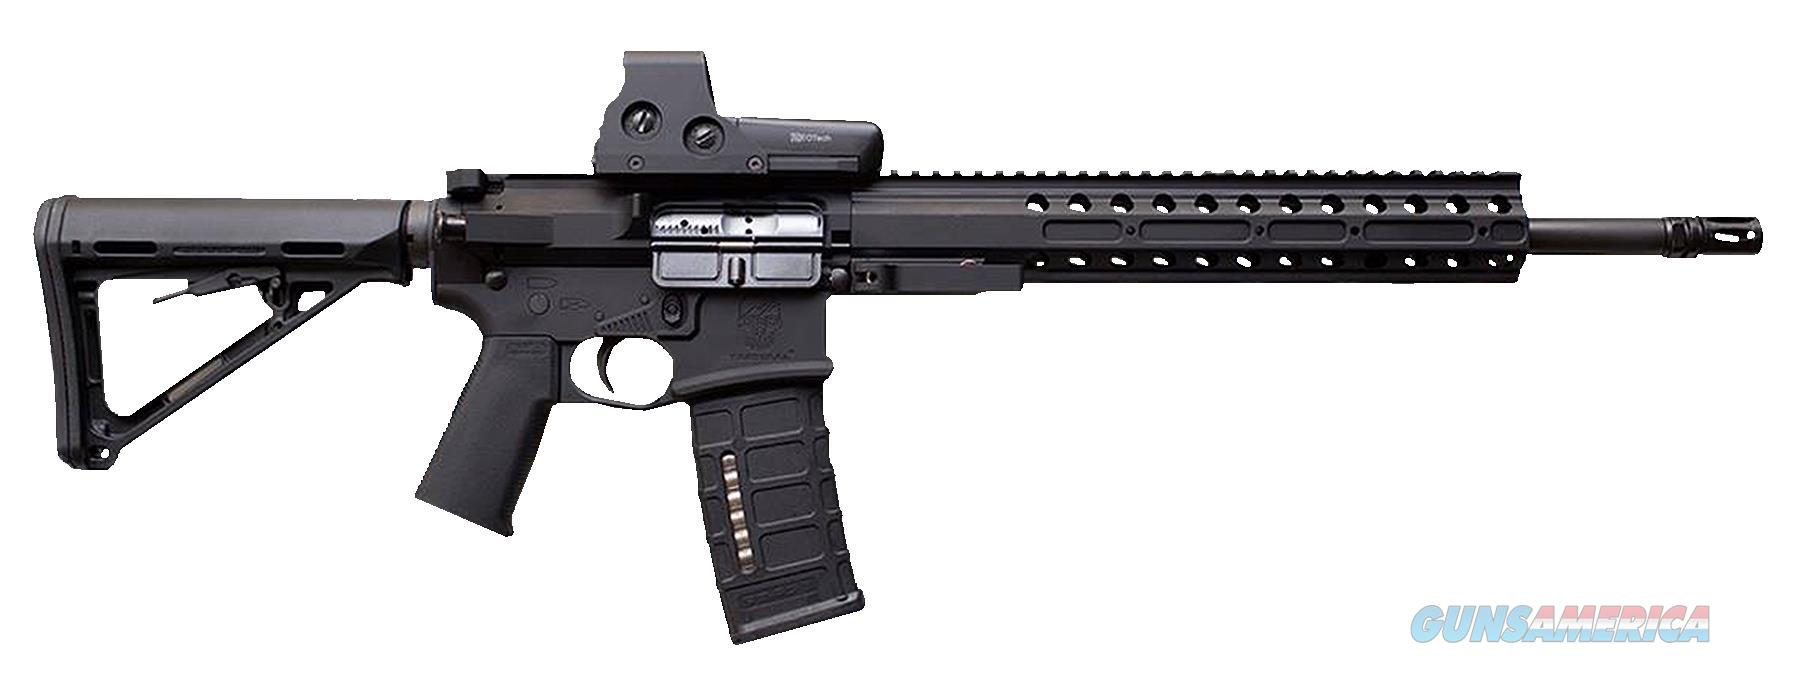 "DRD TACT CDR15-BLK CDR-15 QBD SA 223 REM/5.56 NATO 16"" 30+1 BLK MAGPUL STK BLK CDR15BLK  Guns > Rifles > AR-15 Rifles - Small Manufacturers > Complete Rifle"